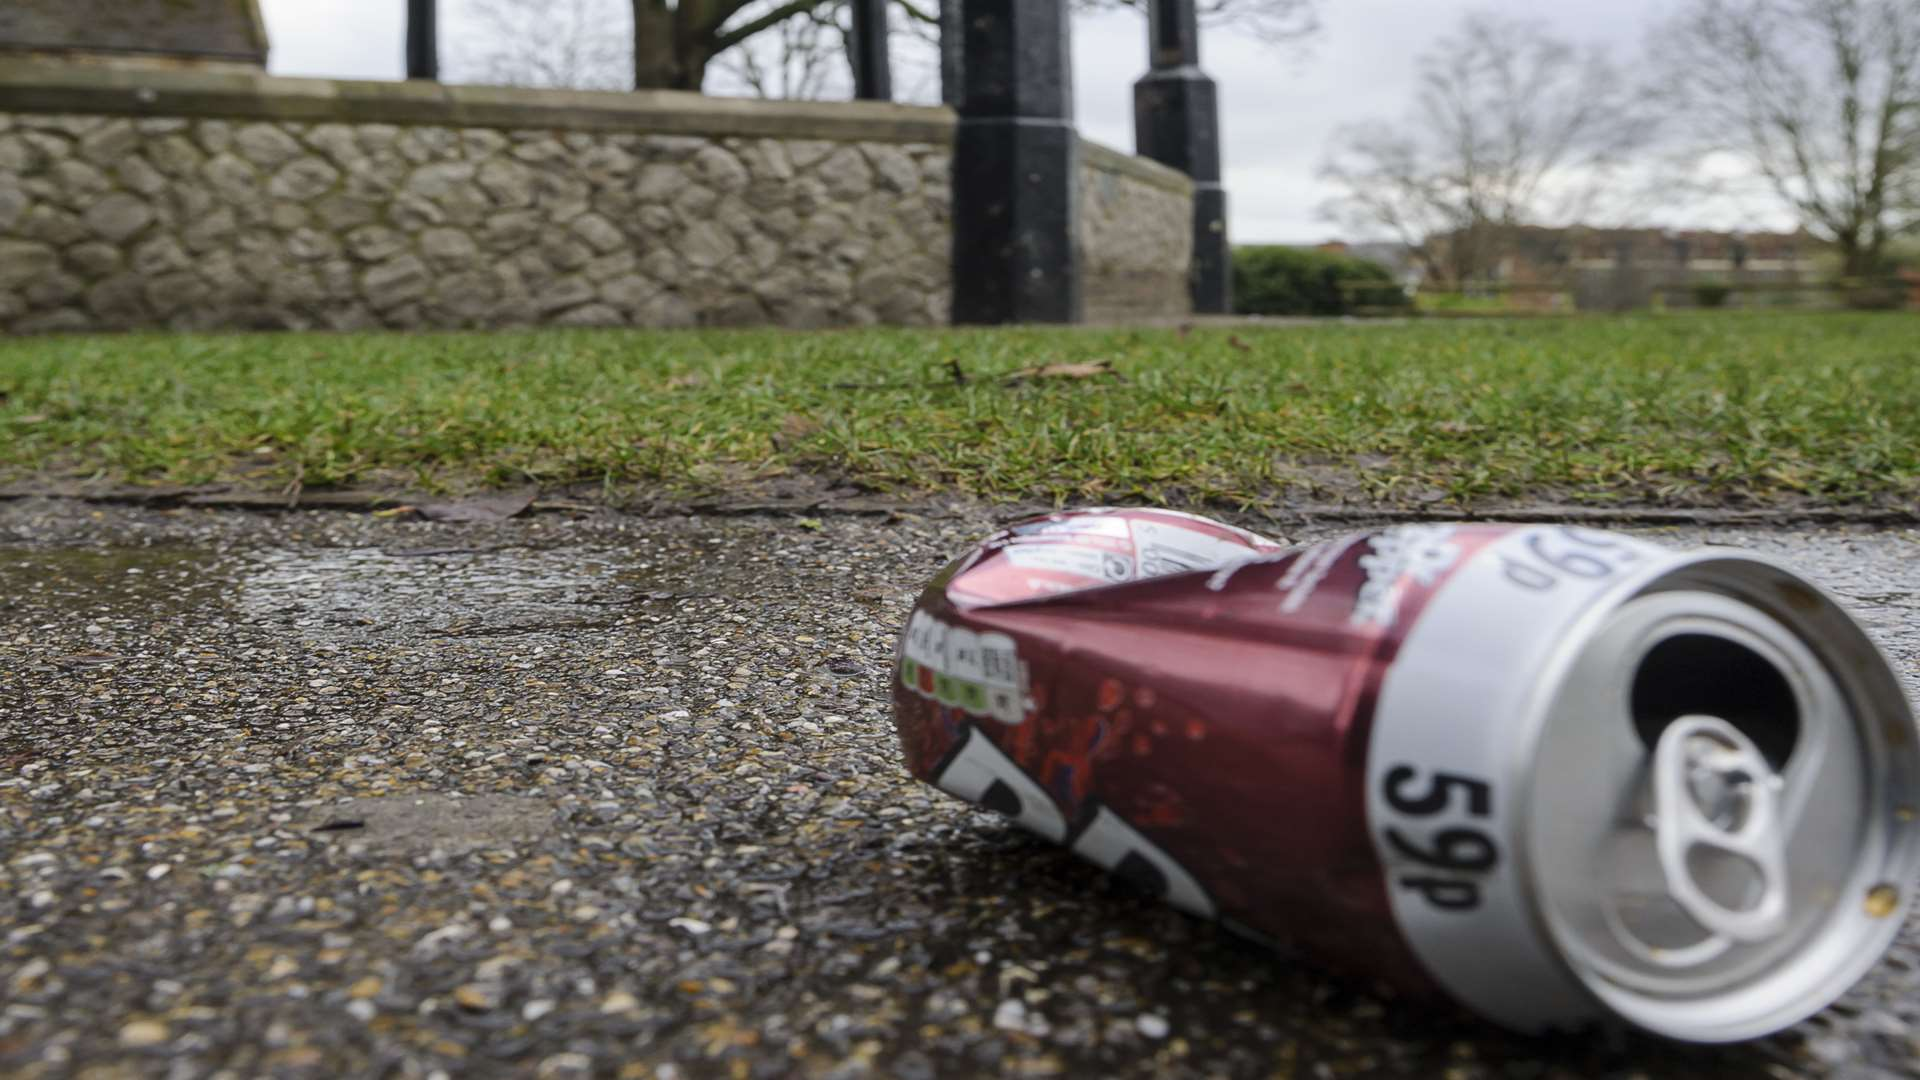 Litter in Brenchley Gardens